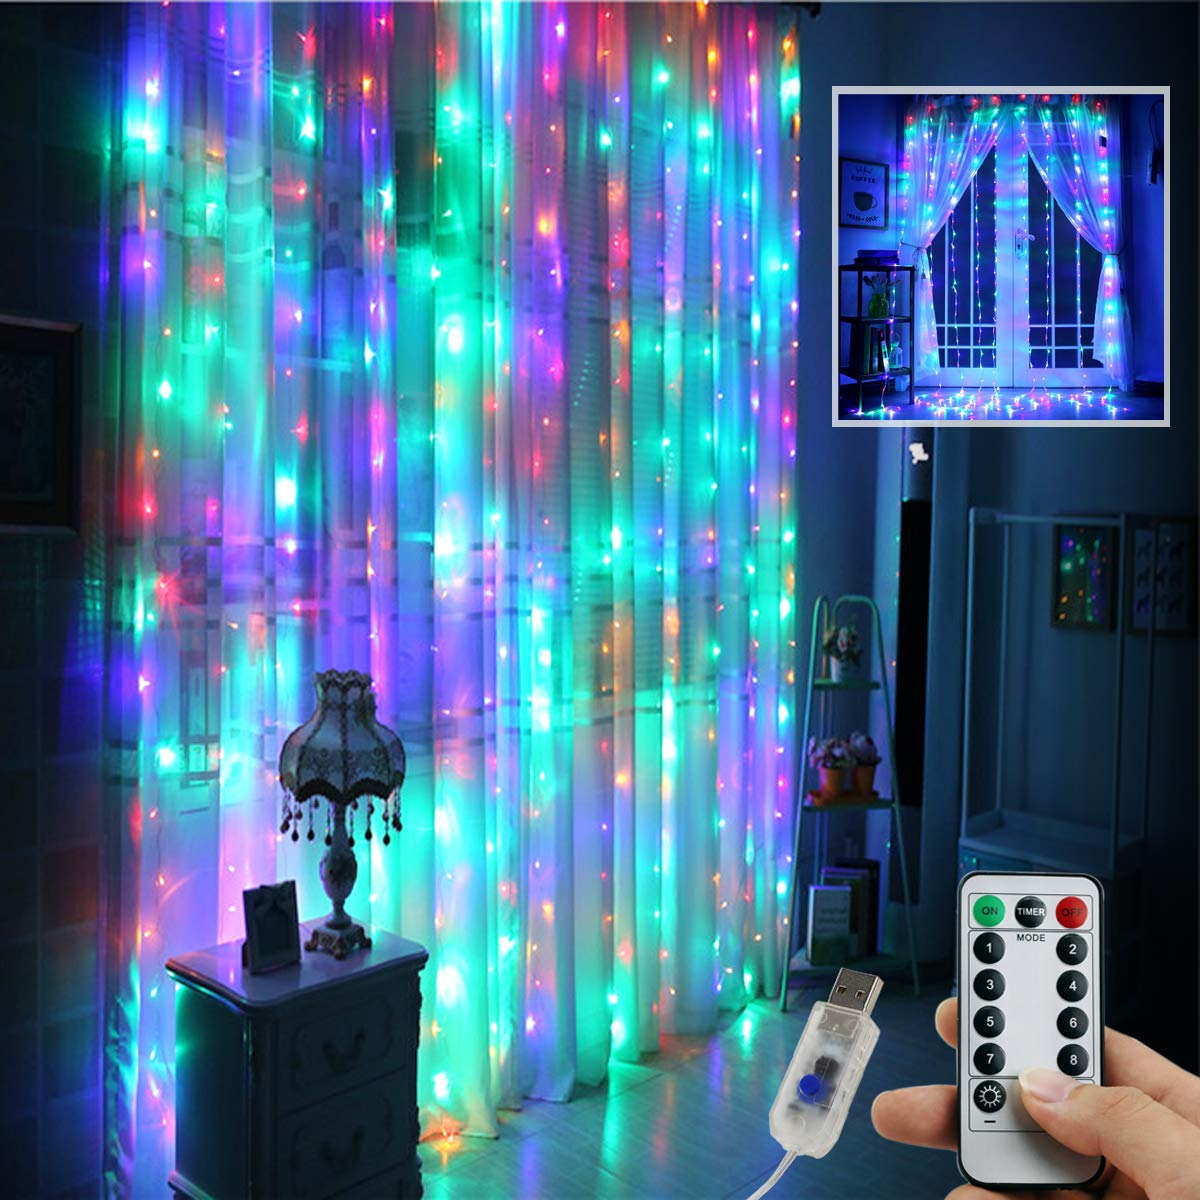 Juhefa Window Curtain Lights 300 LED USB Powered Fairy String Lights with Remote, IP64 Waterproof & 8 Settings Twinkle Lights for Bedroom Parties,Weddings,Wall Decorations (9.8x9.8Ft Multi-Color)